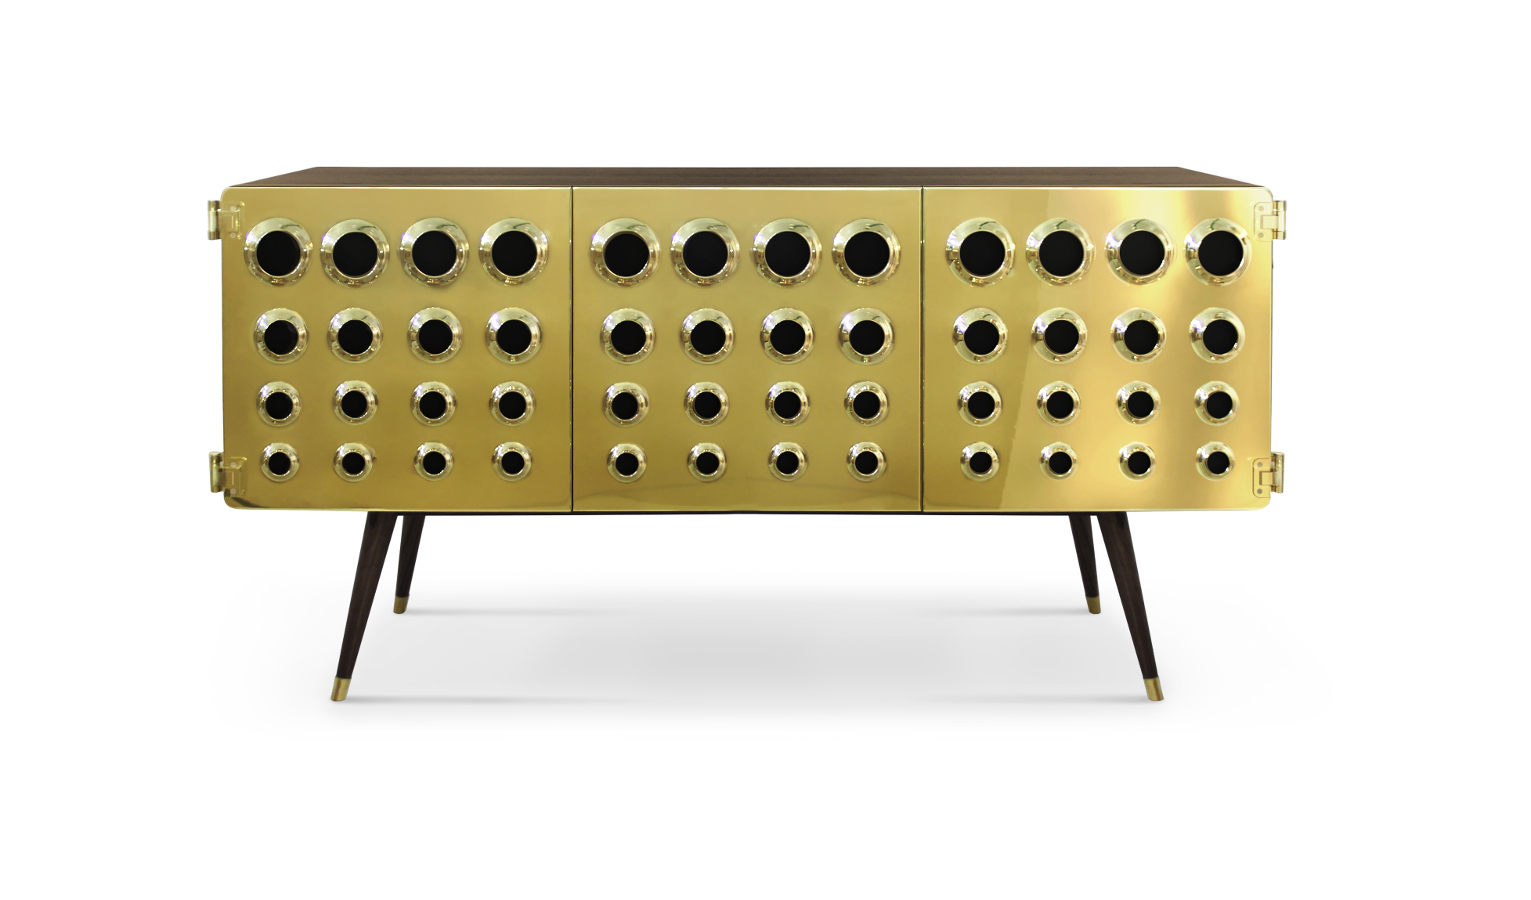 delightfull_monocles-vintage-retro-urban-wood-brass-sideboard-front